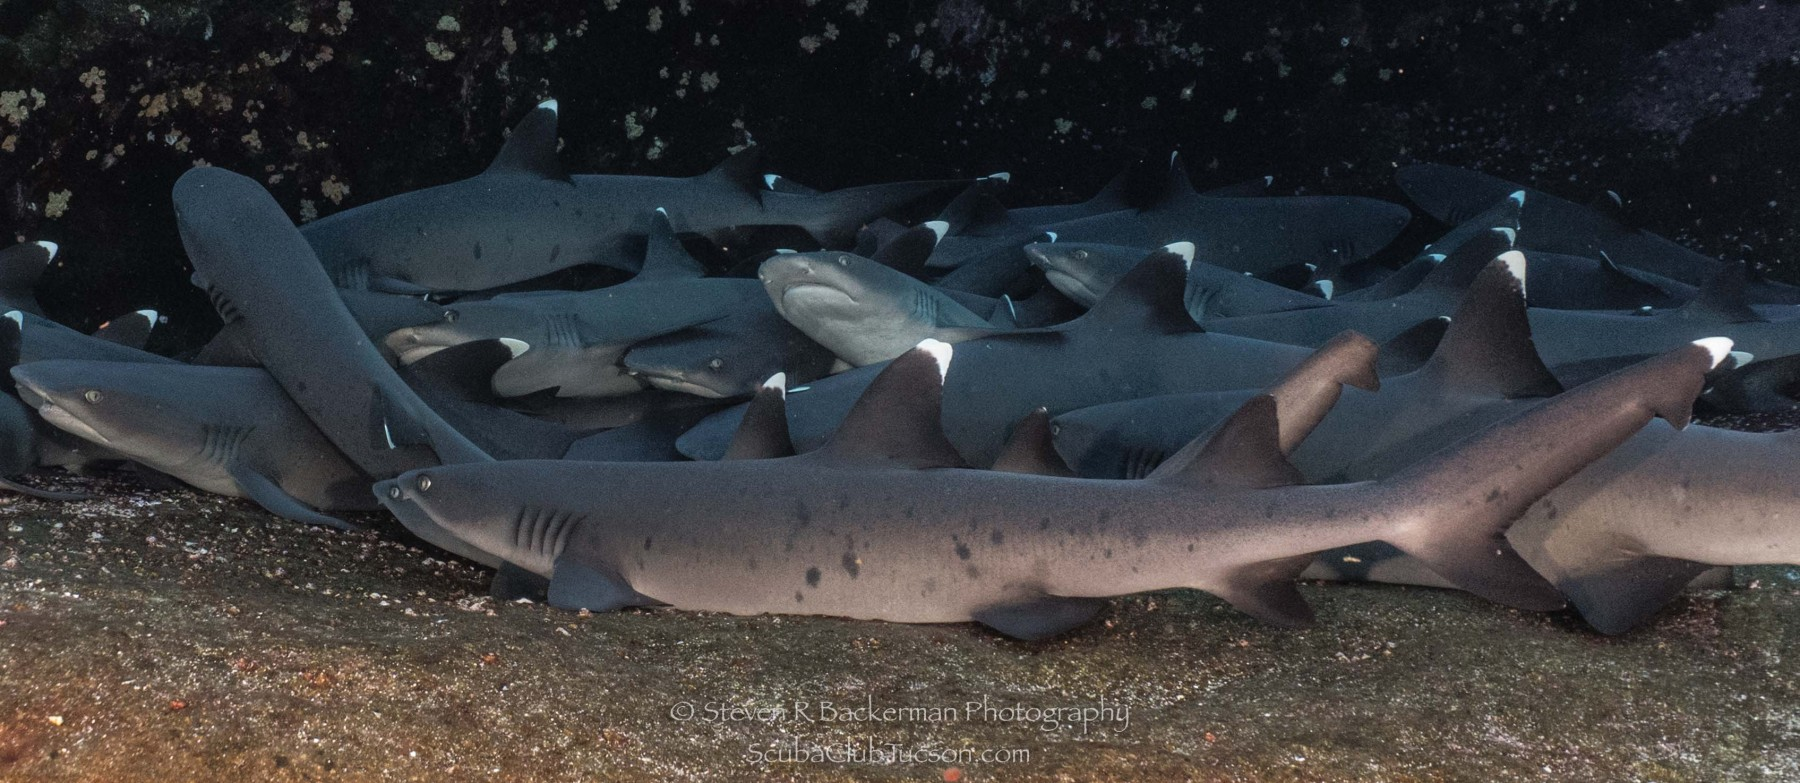 White-tipped Reef Sharks 3-0817